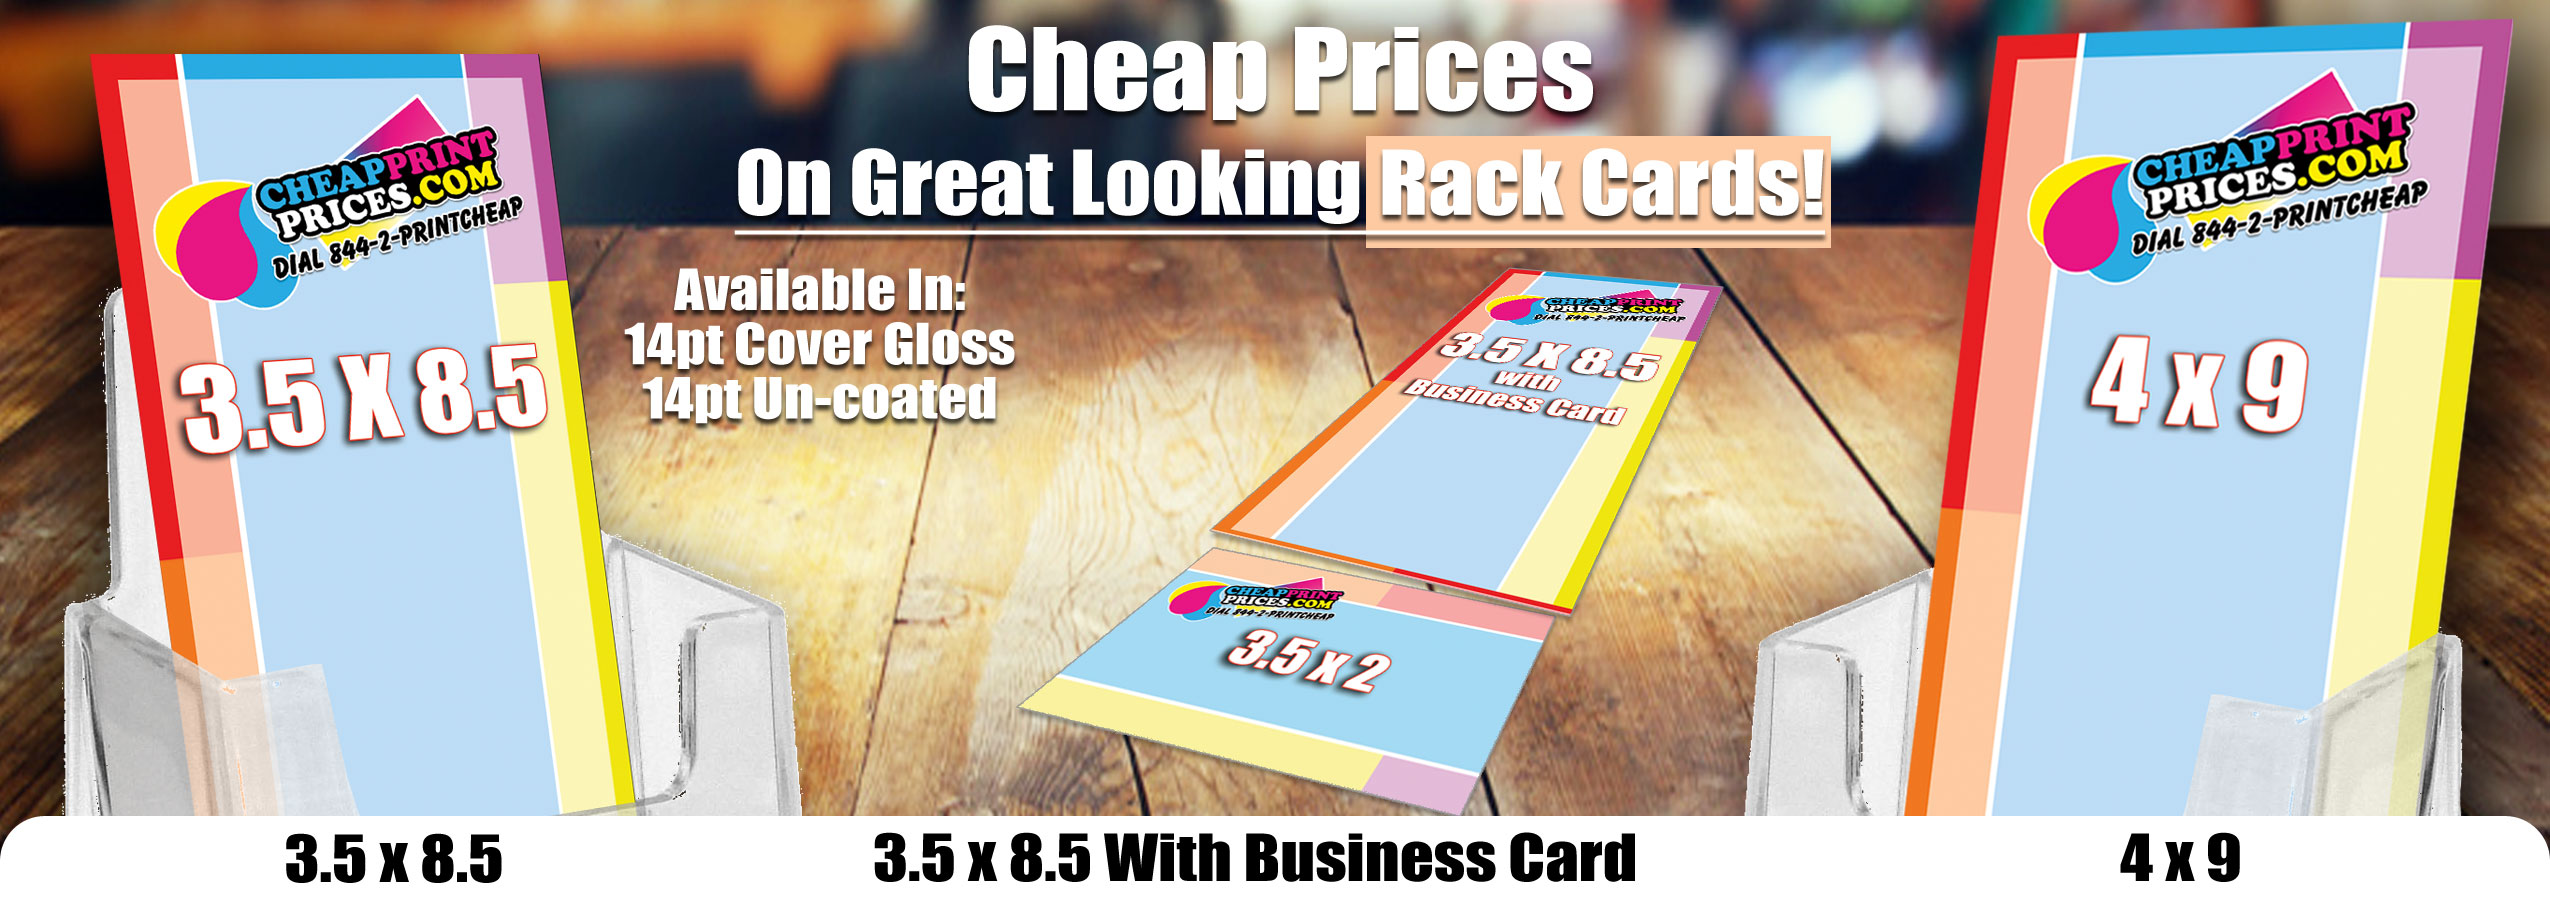 Rack Card Printing - 5000 Rackcards $189 Free Shipping